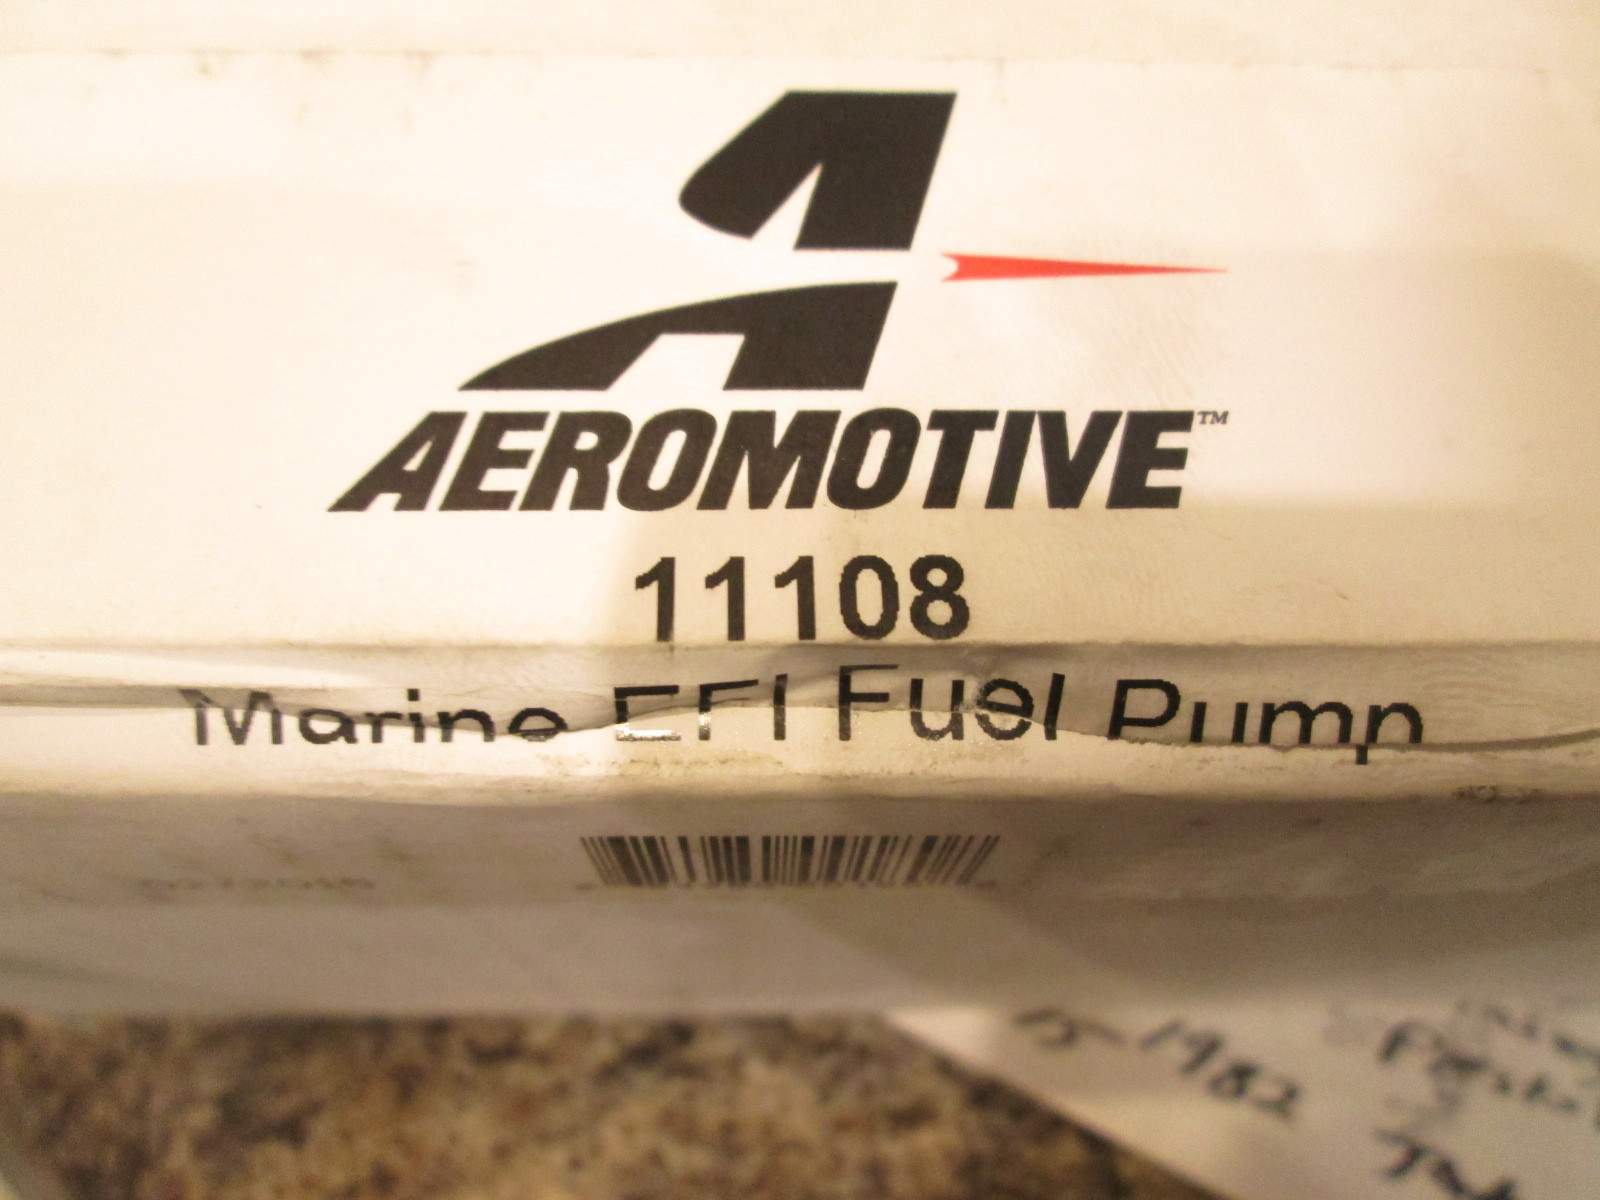 Aeromotive Wire Harness Wiring Library 11108 A1000 Marine Electric Fuel Pump W Mercury